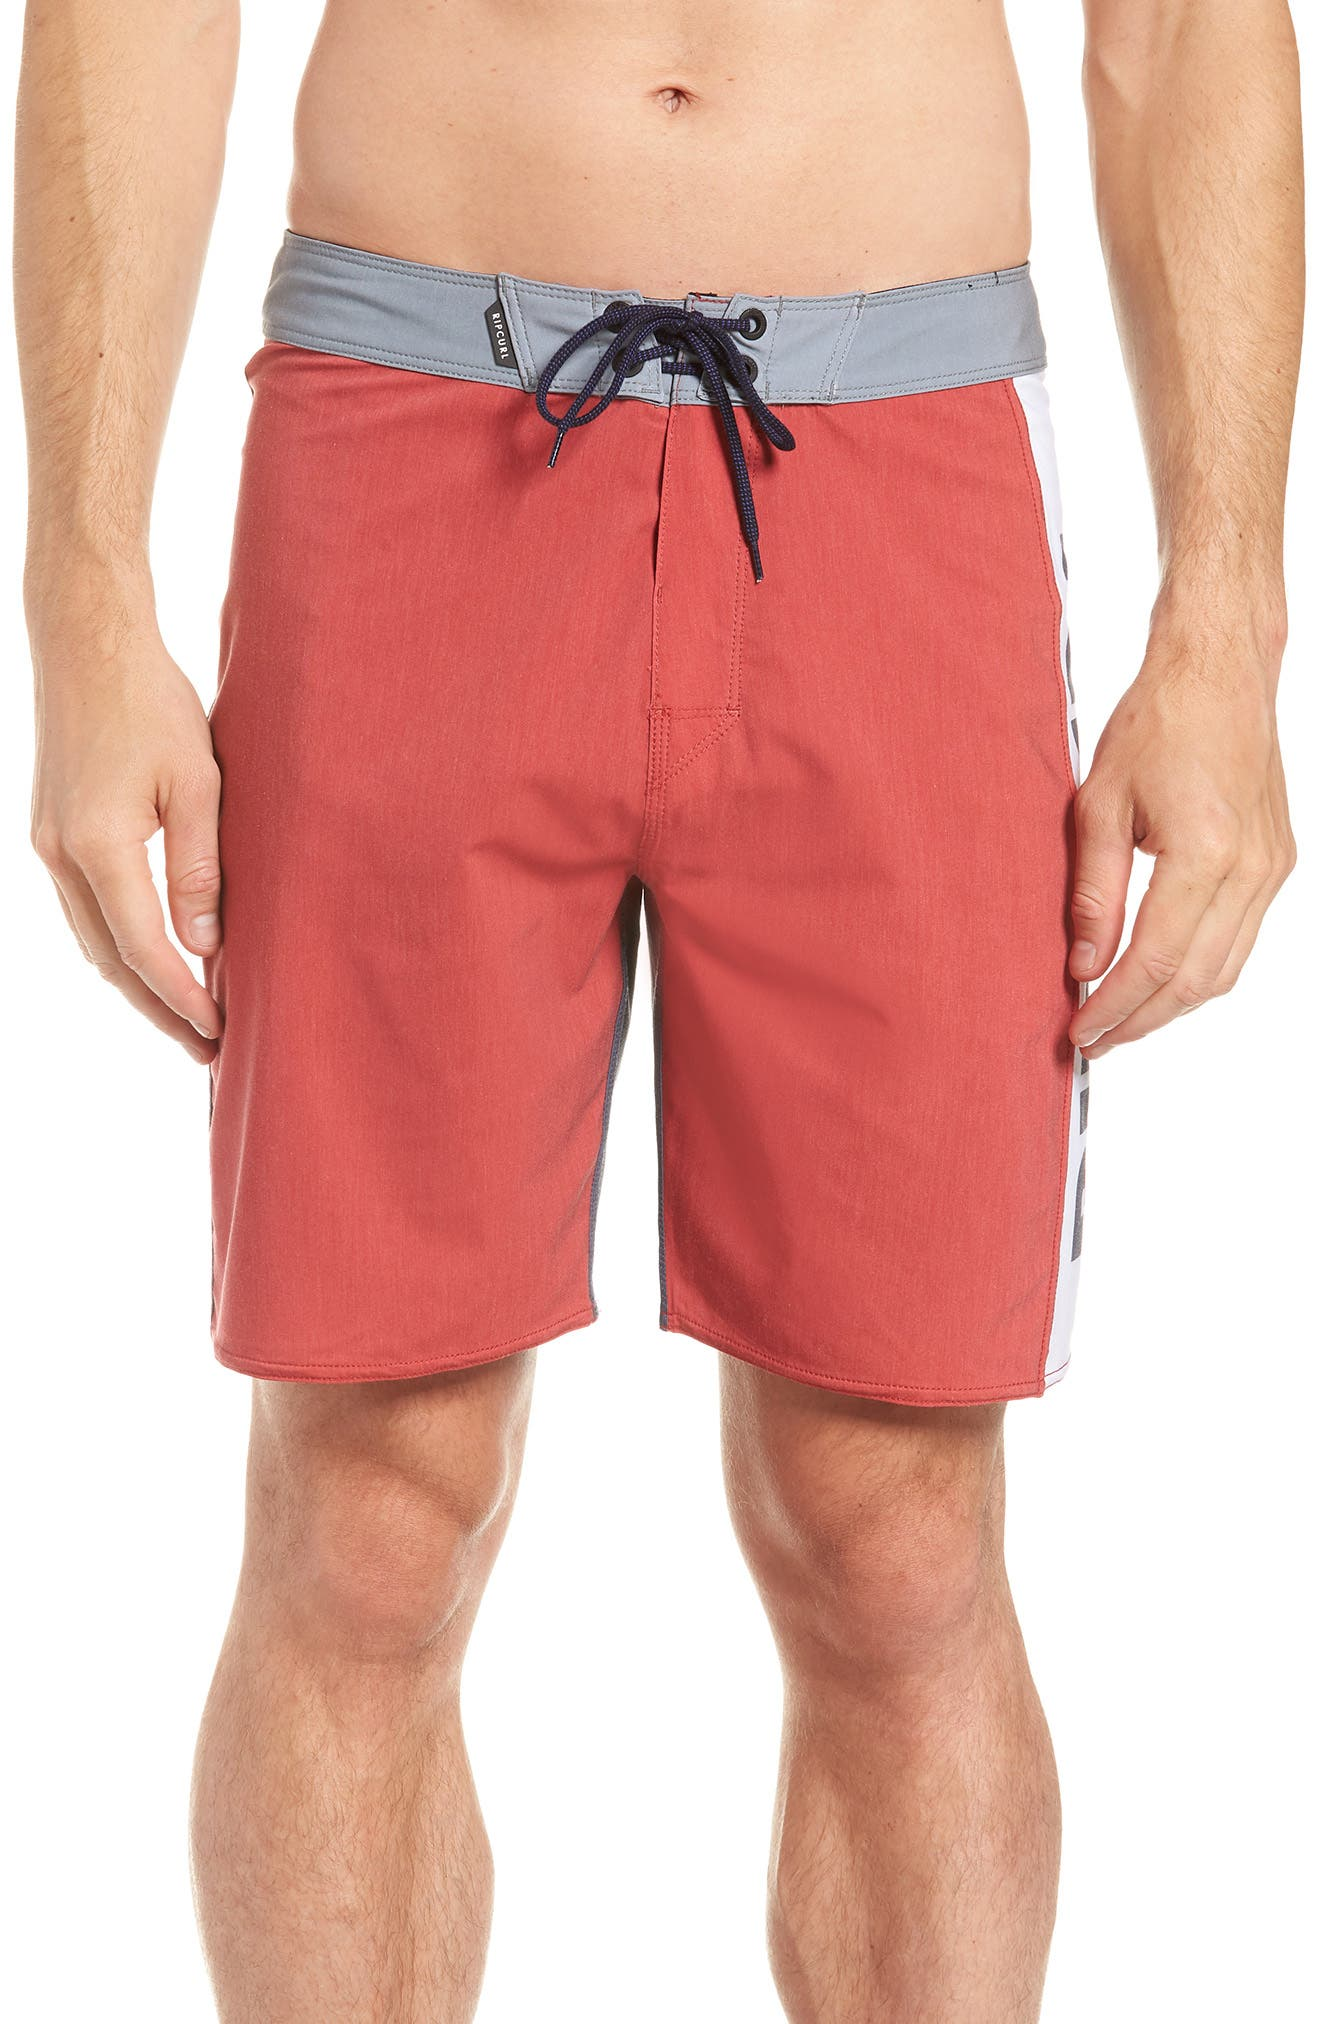 Mirage Owen Stretch Board Shorts,                         Main,                         color, Red